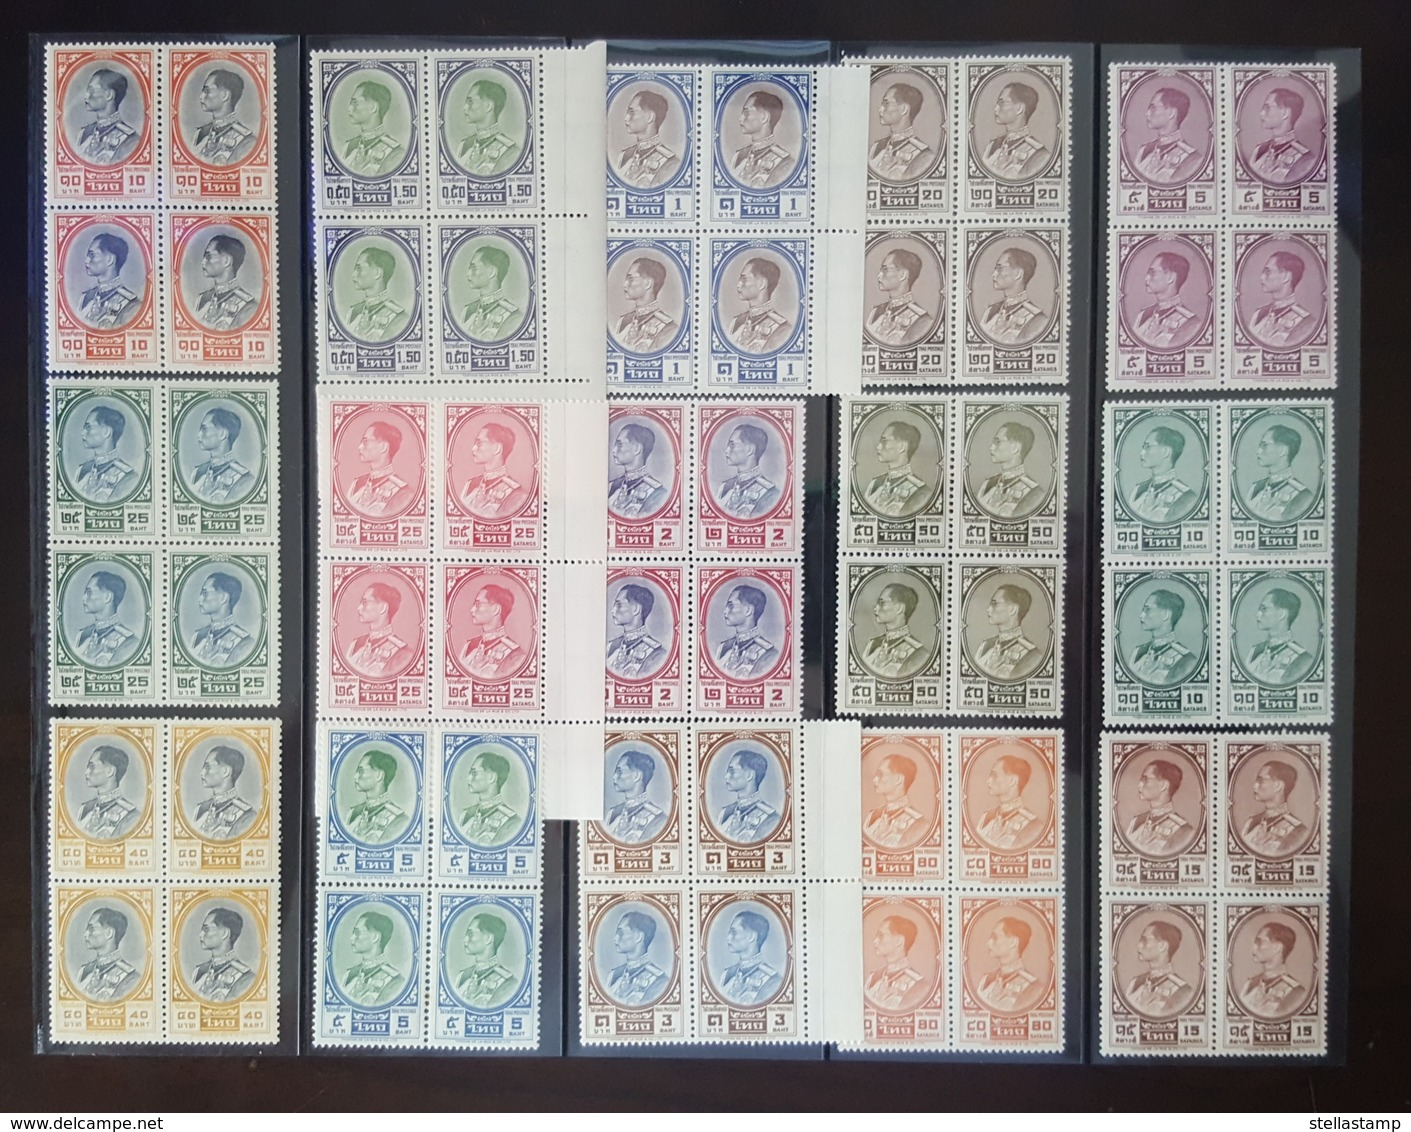 Thailand Stamp Definitive King Rama 9 3th Series Set Of 15 (Missing 1.25 - 4 - 20 Baht) BLK4 - Thailand